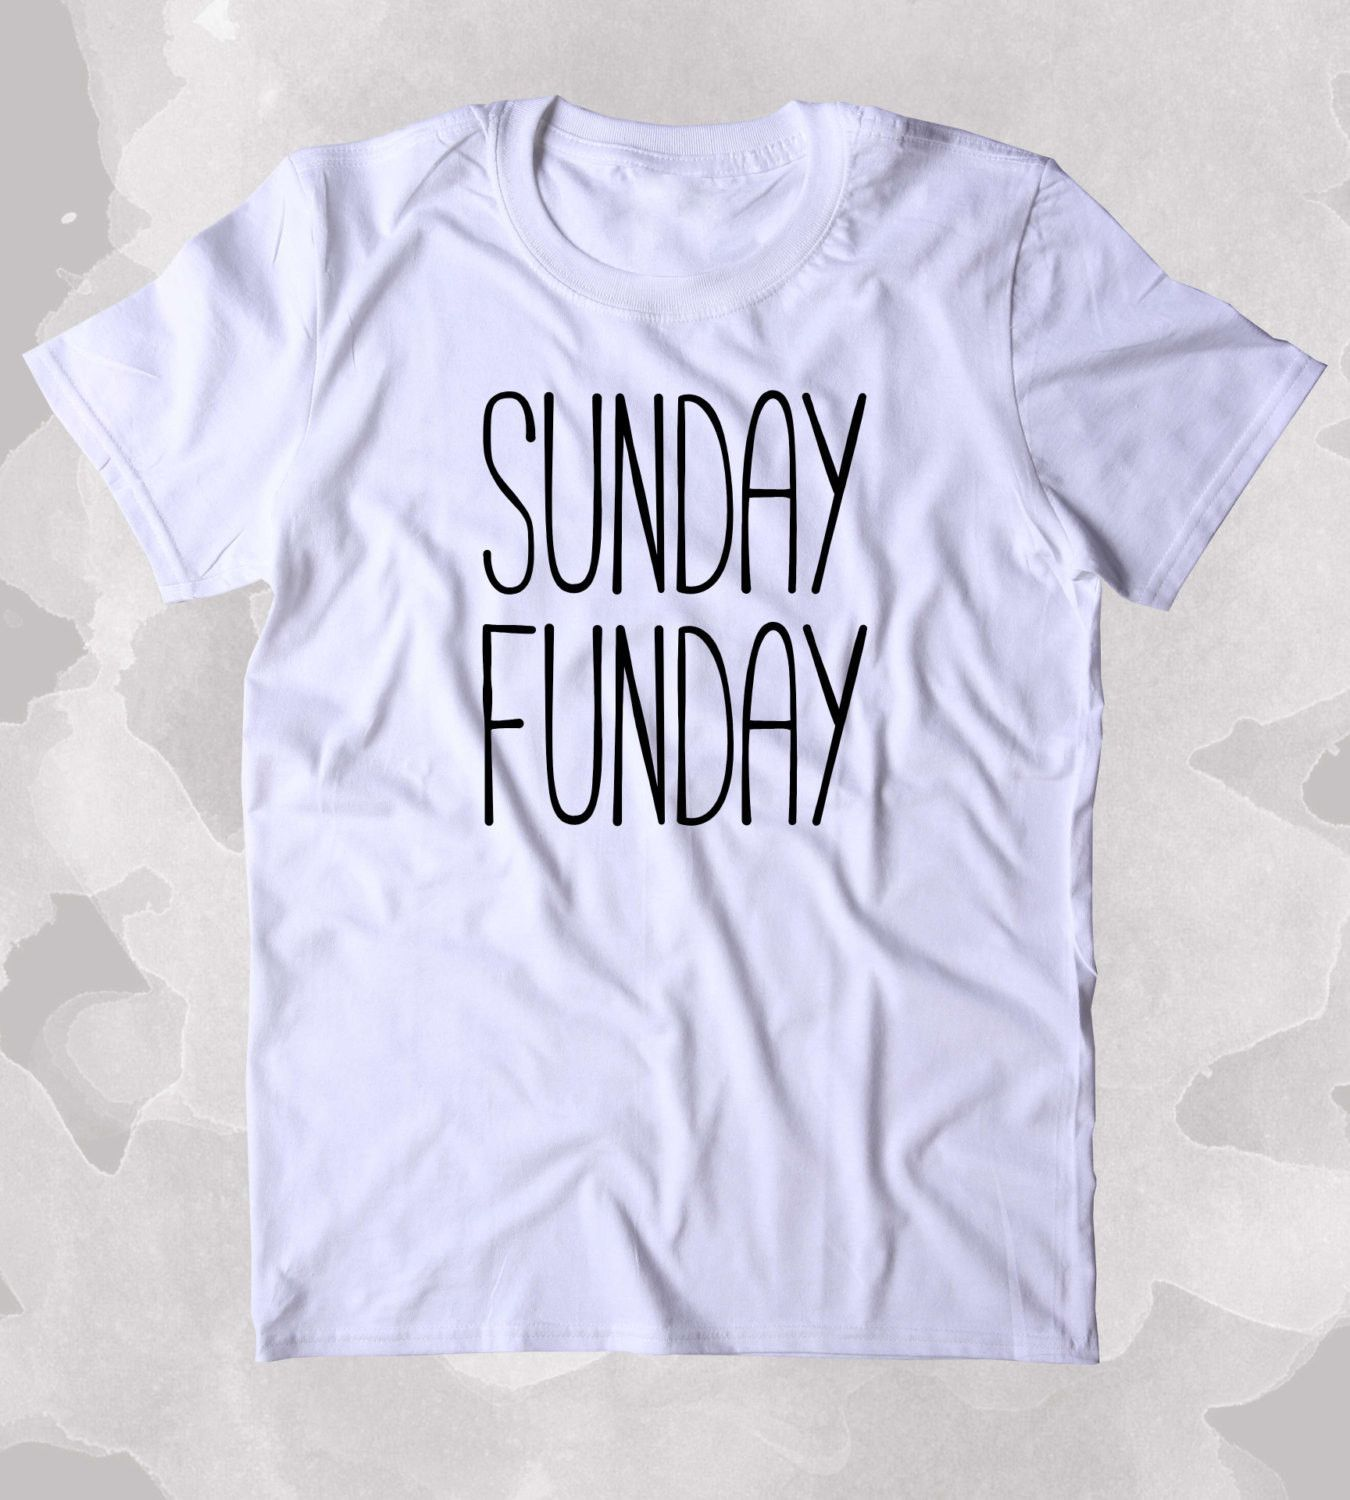 Sunday Funday Shirt Relax Chill Weekend Drinking Clothing Tumblr Tshirt is part of Clothes Tumblr Brunettes - country!